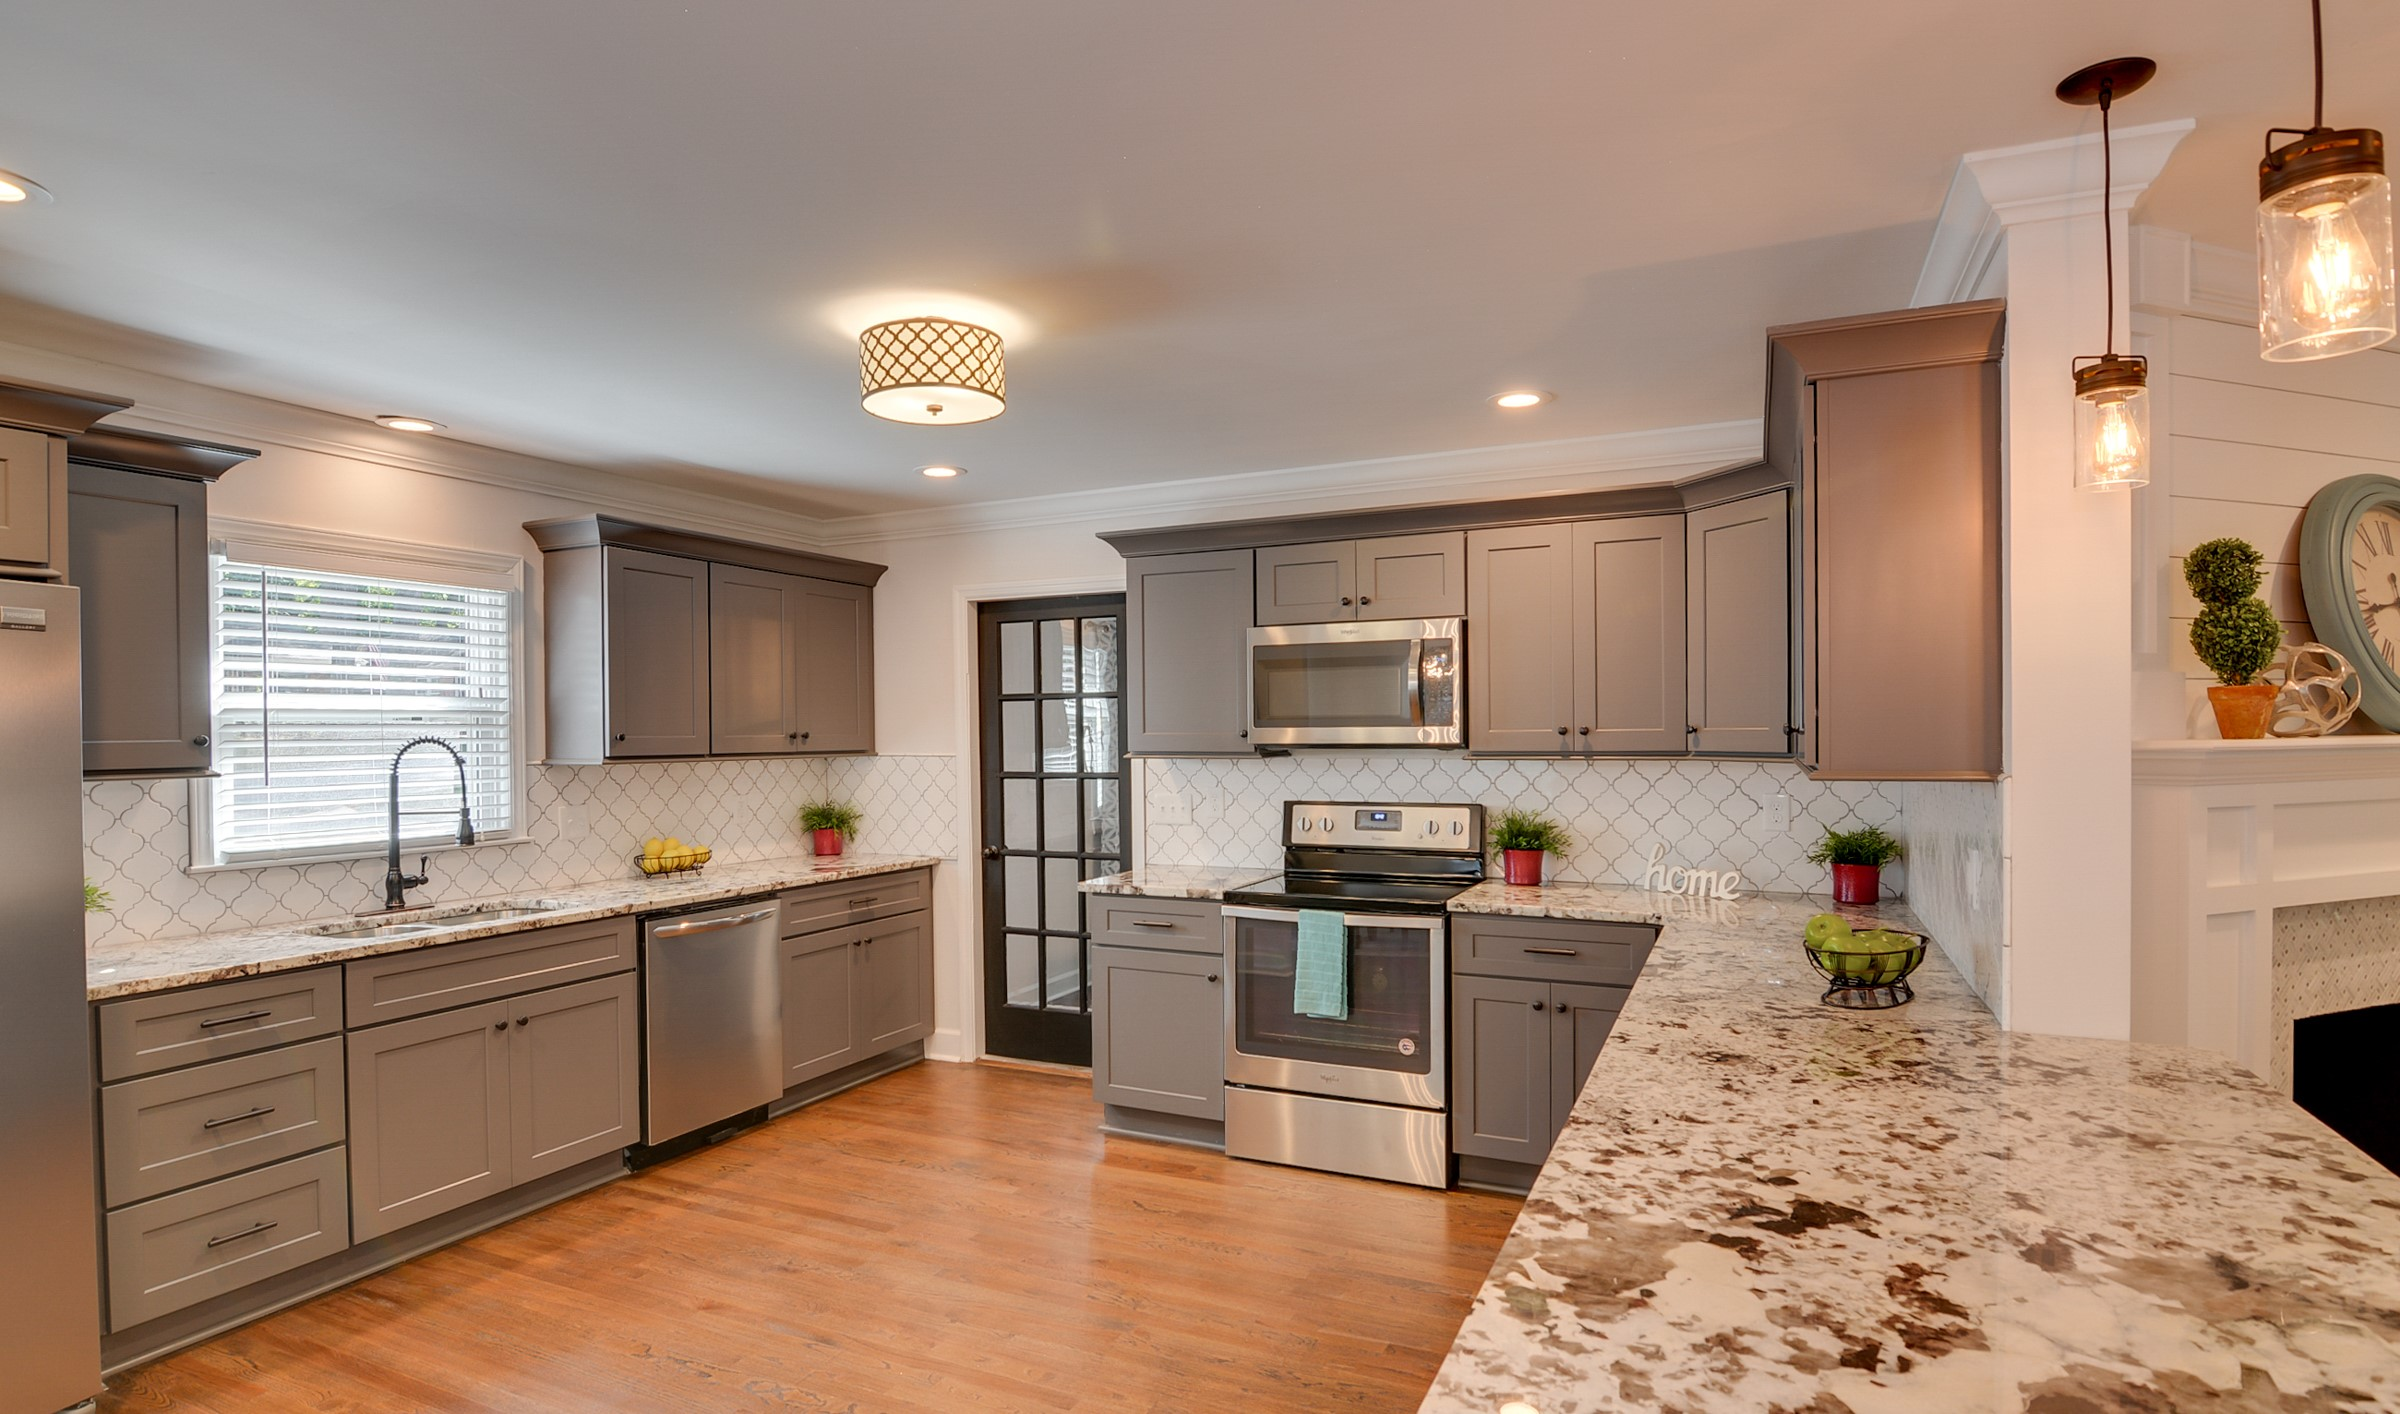 ga cool awesome granite that images elegant countertops outrageous of photos augusta probably and more